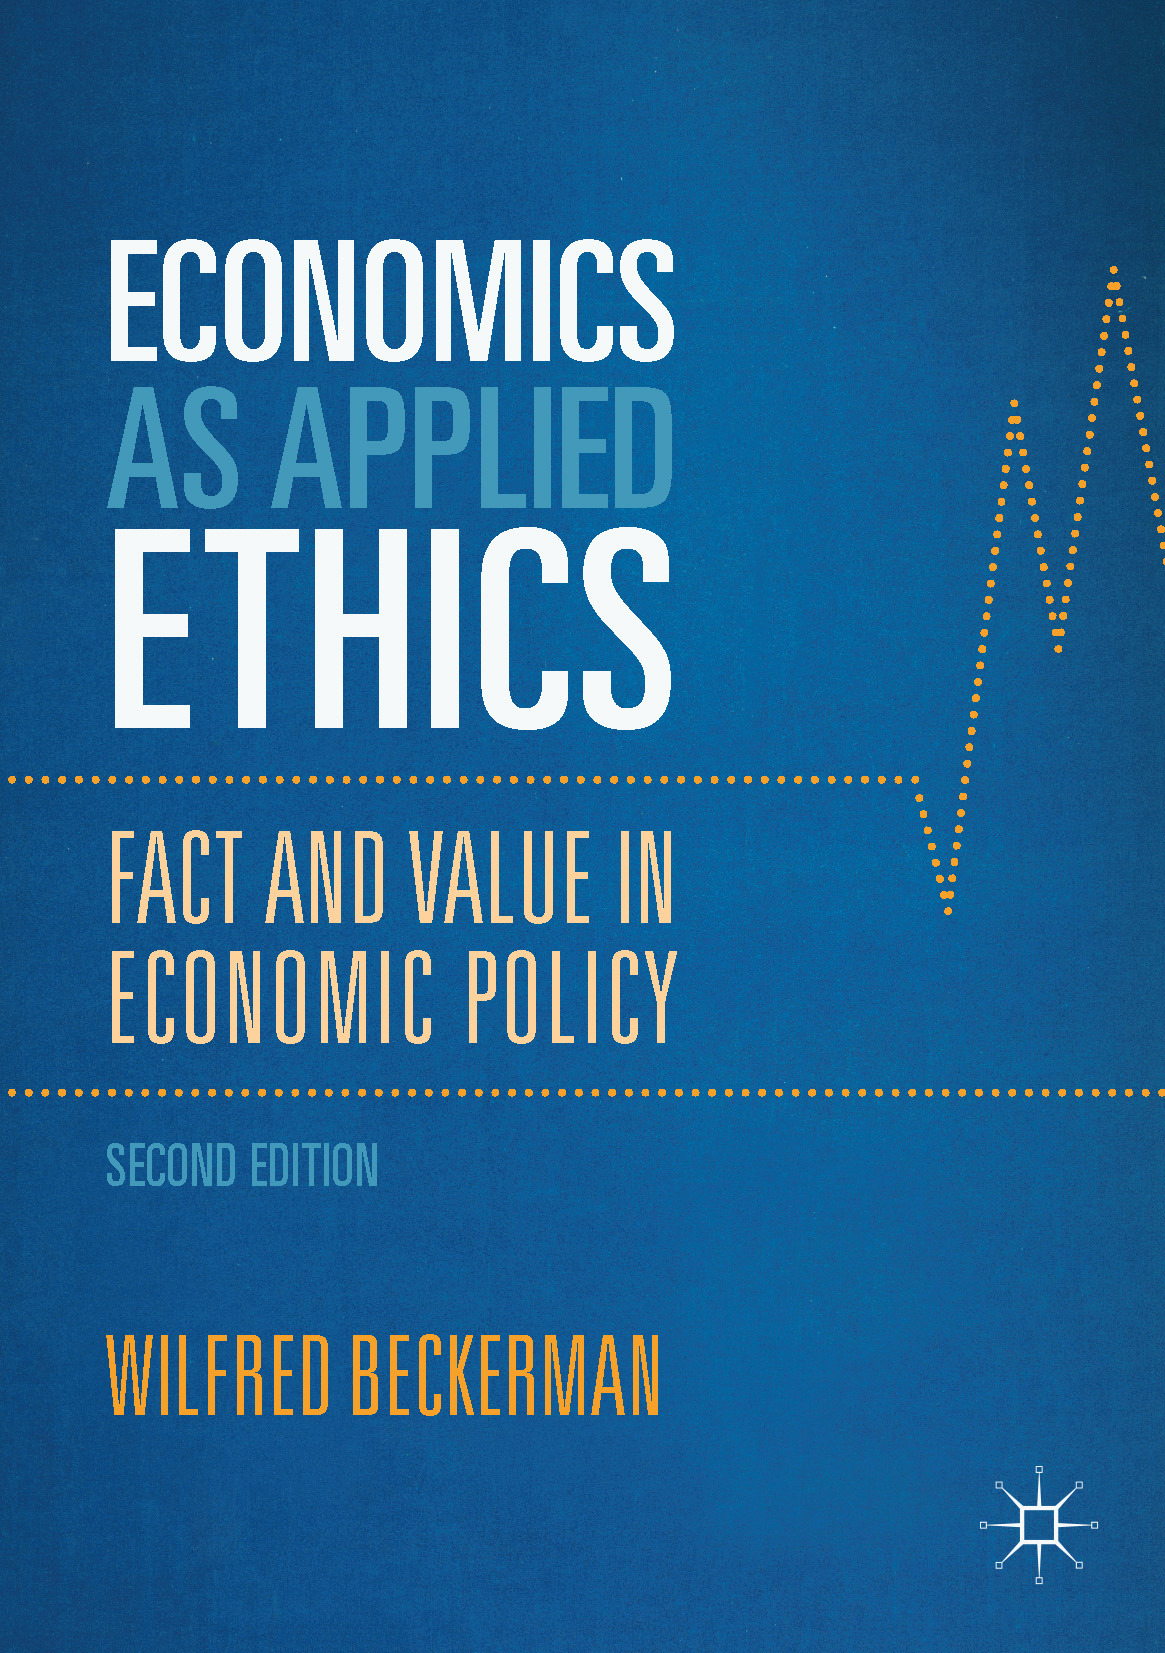 Beckerman, Wilfred - Economics as Applied Ethics, ebook